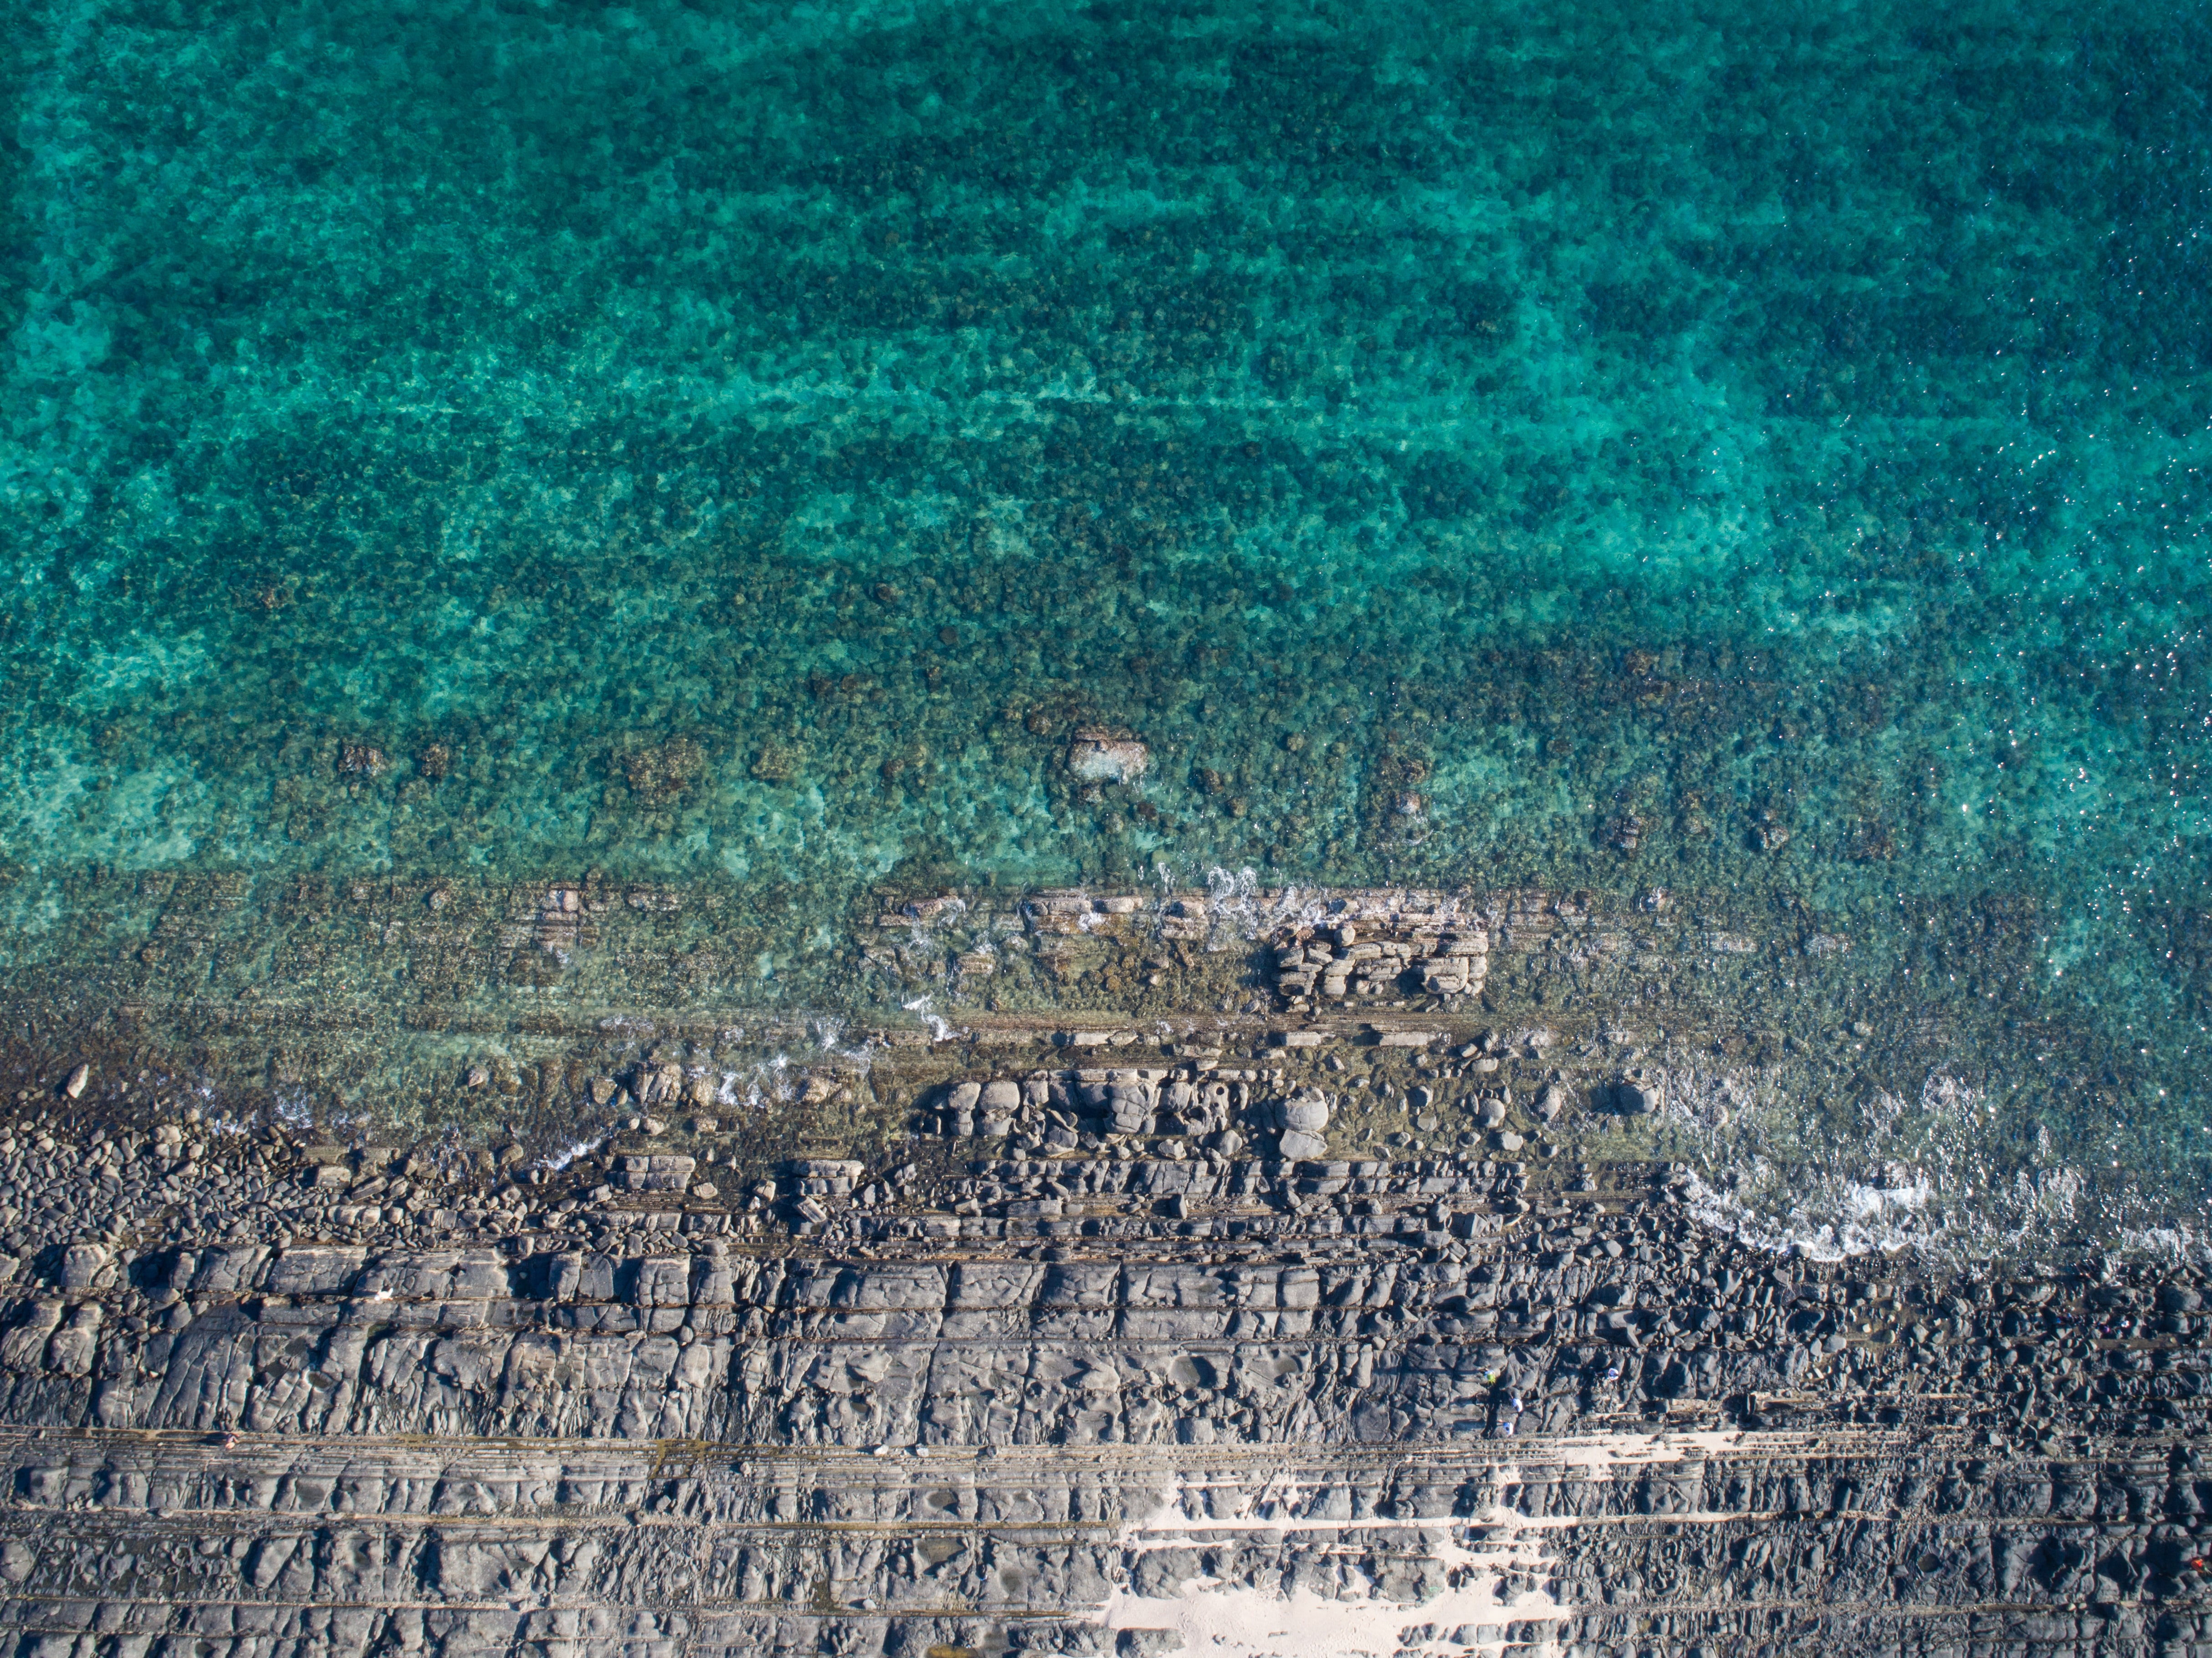 bird's eye view photography of coastline